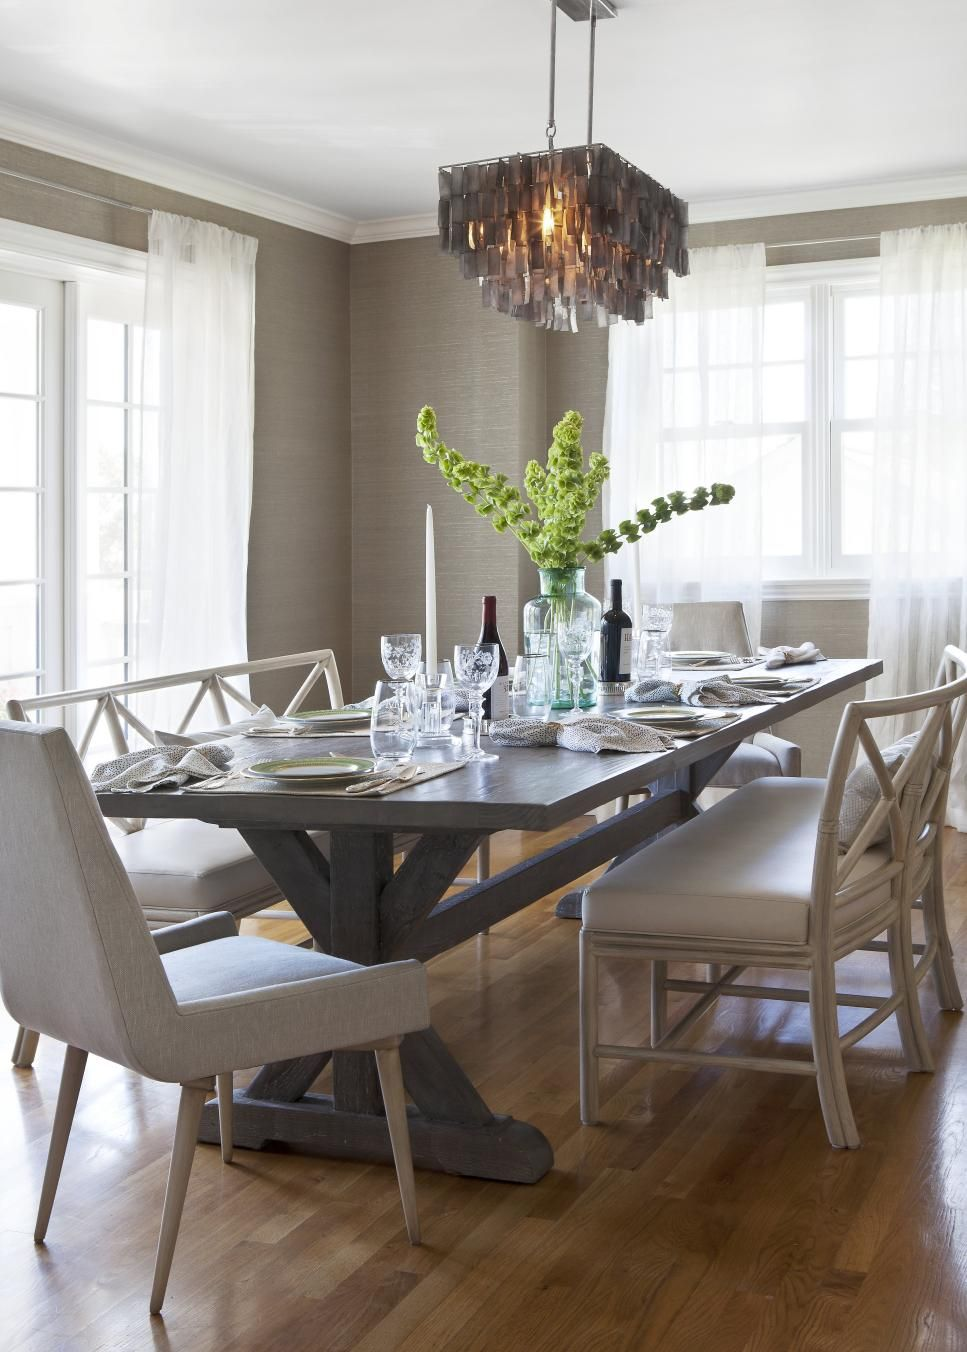 The Focal Points Of This Inviting Dining Room Are The Modern Style